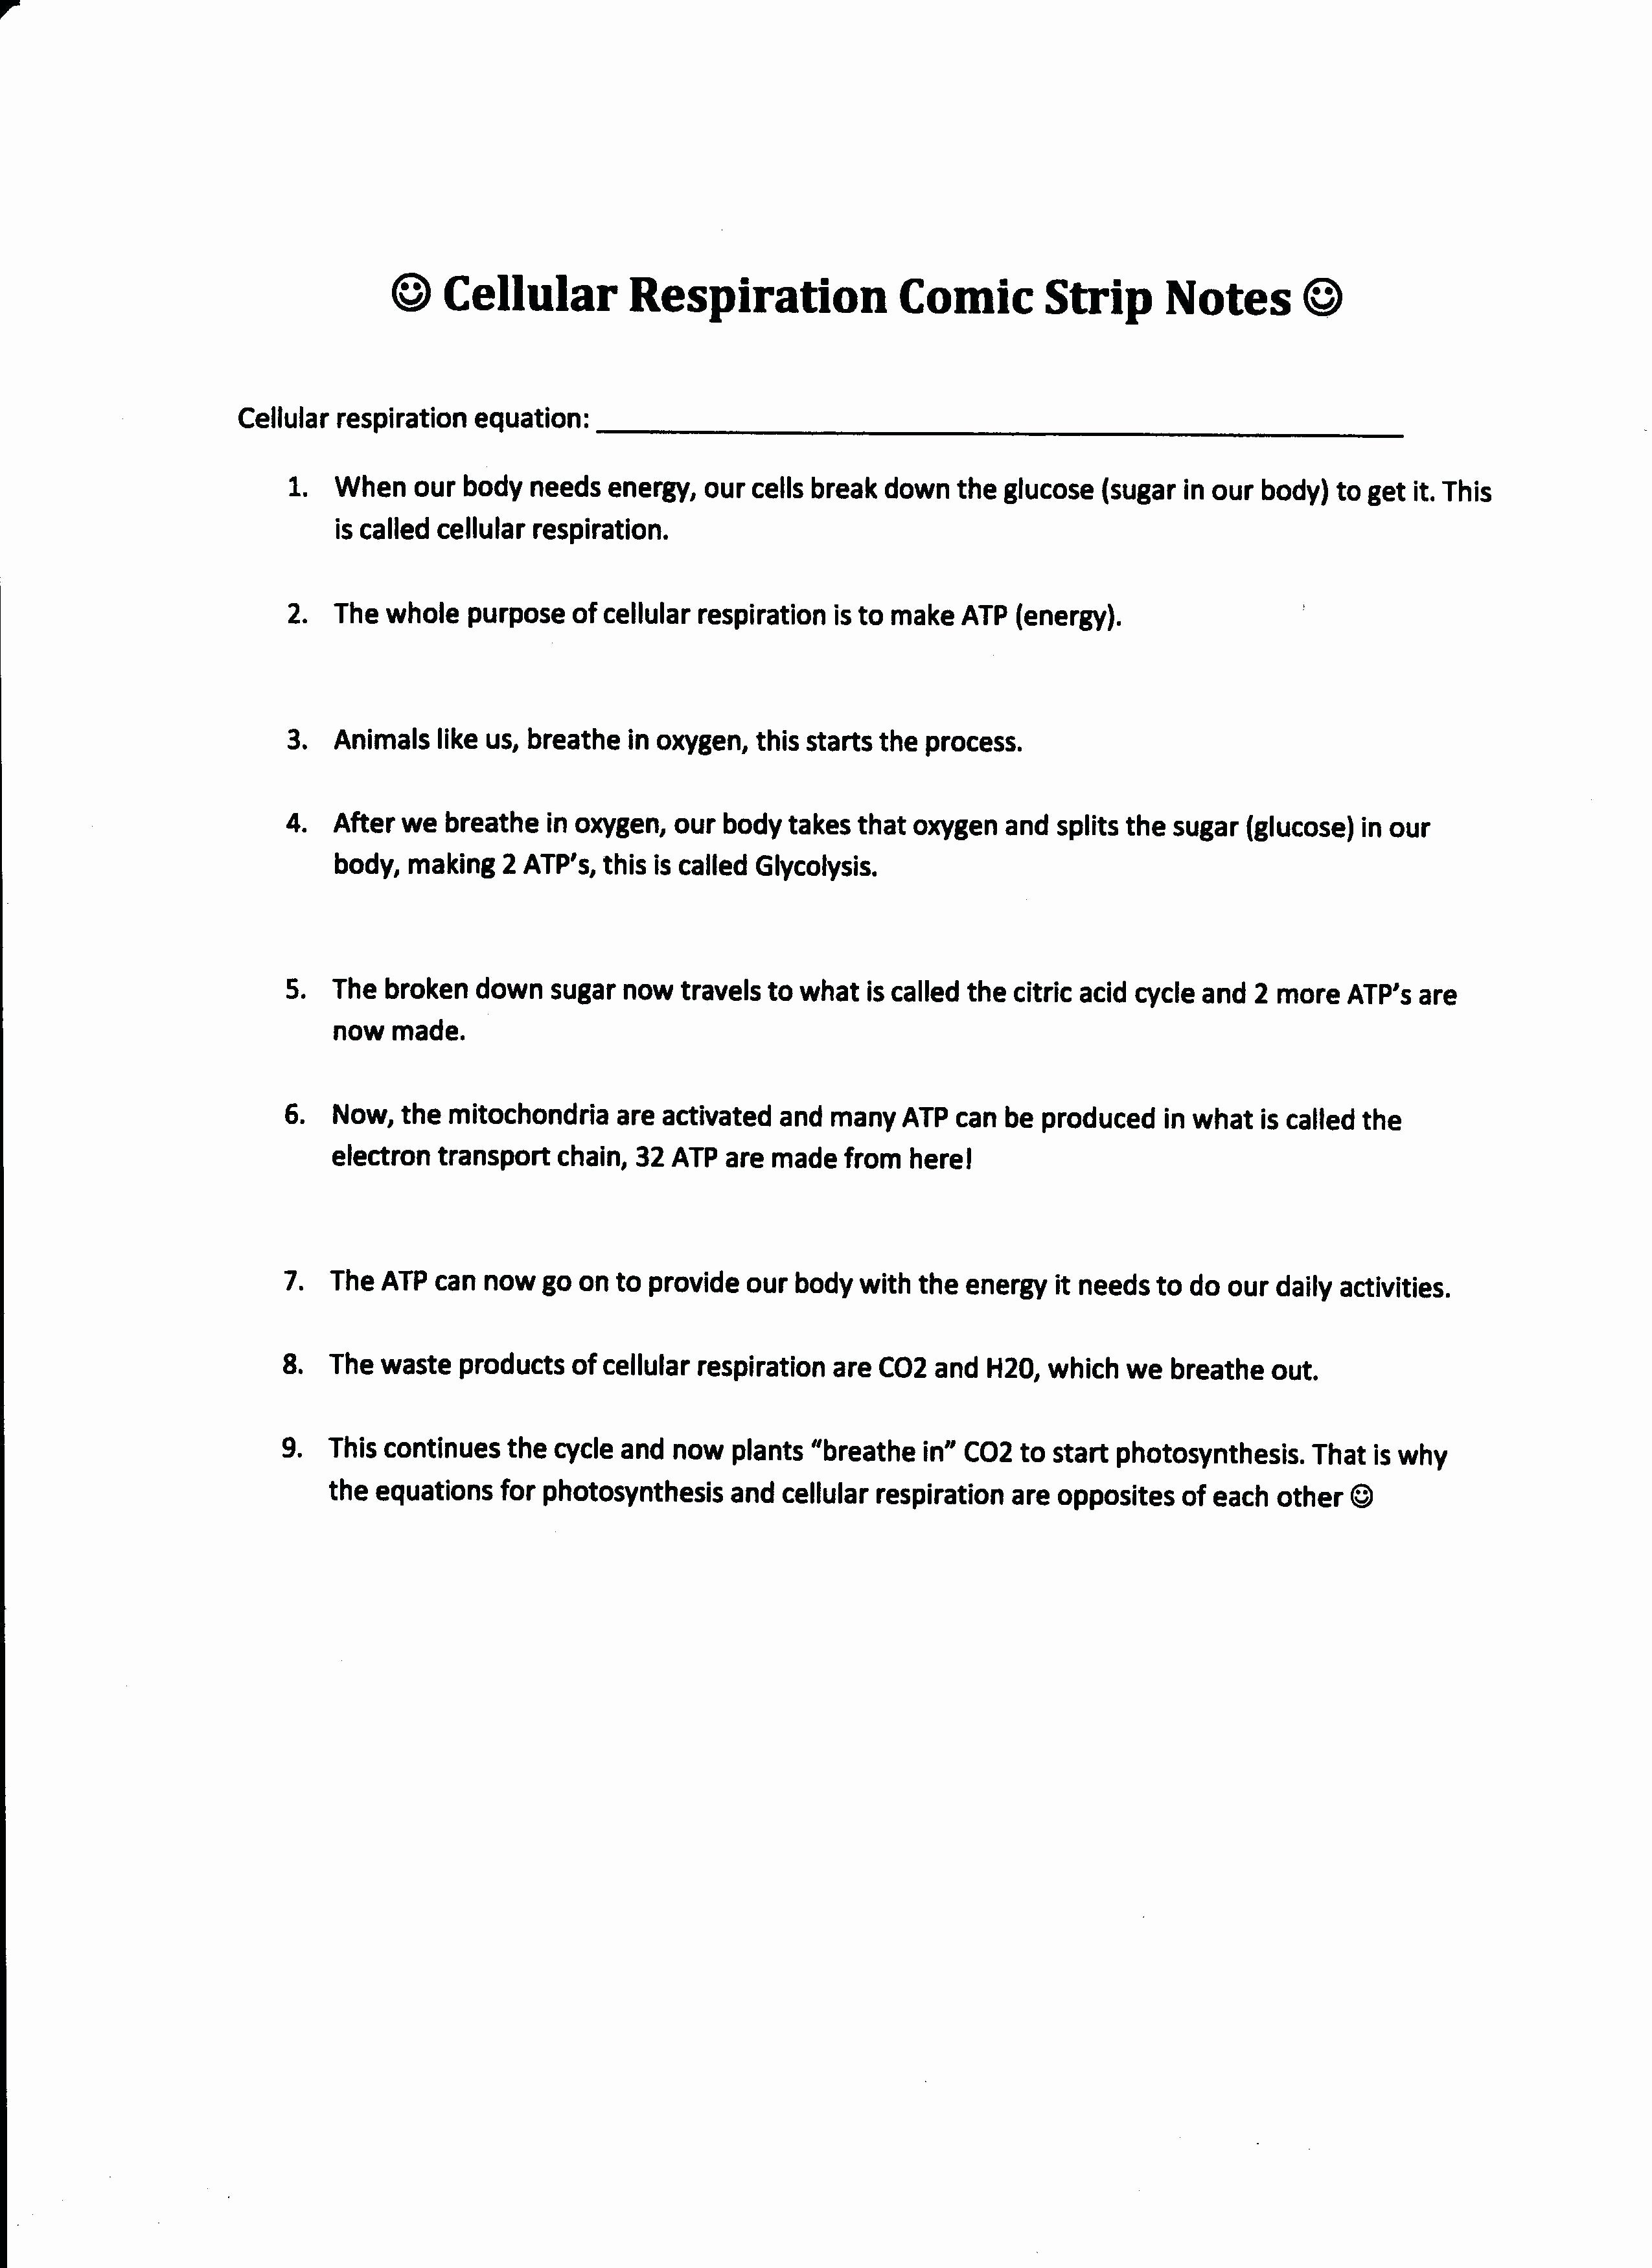 Bill Nye Motion Worksheet Answers Beautiful Bill Nye Worksheets Wetlands Justswimfl Best Ideas Of